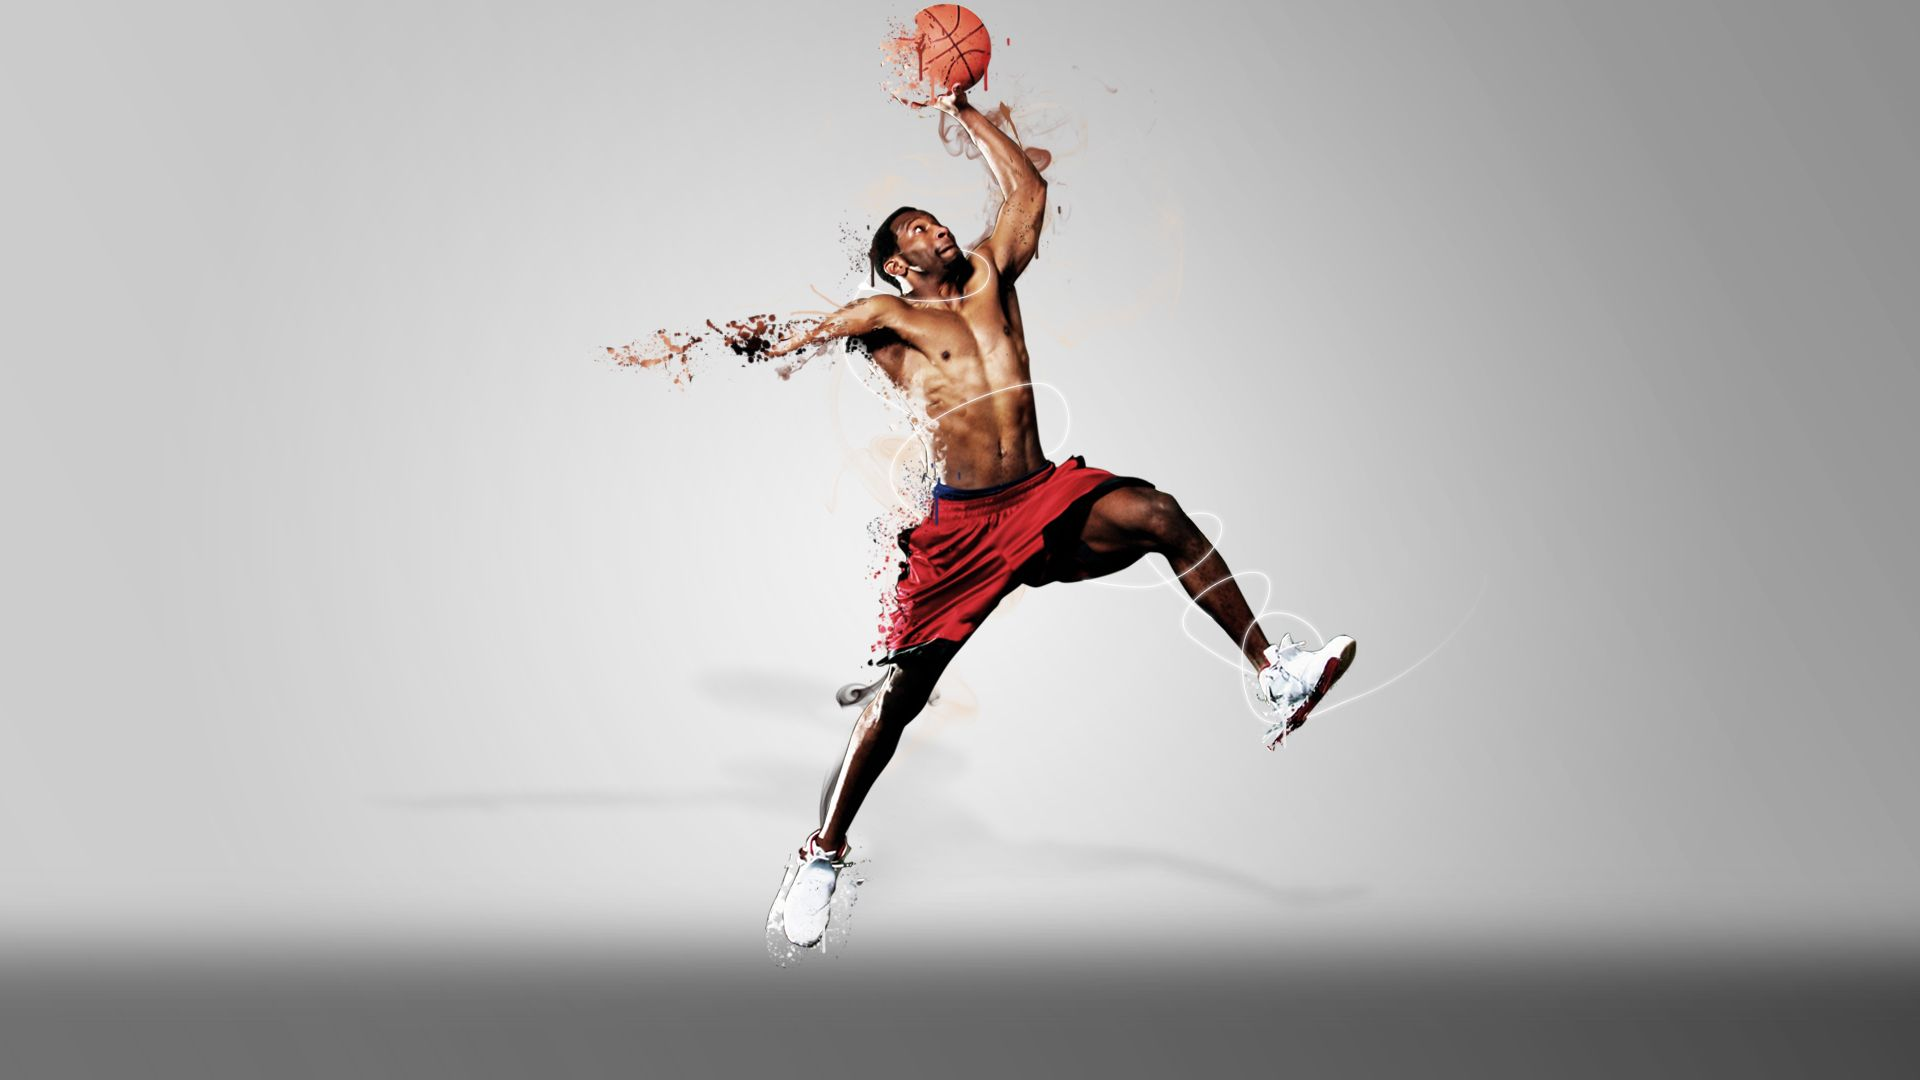 Sports Basketball Wallpapers High Quality Athletics Wallpaper